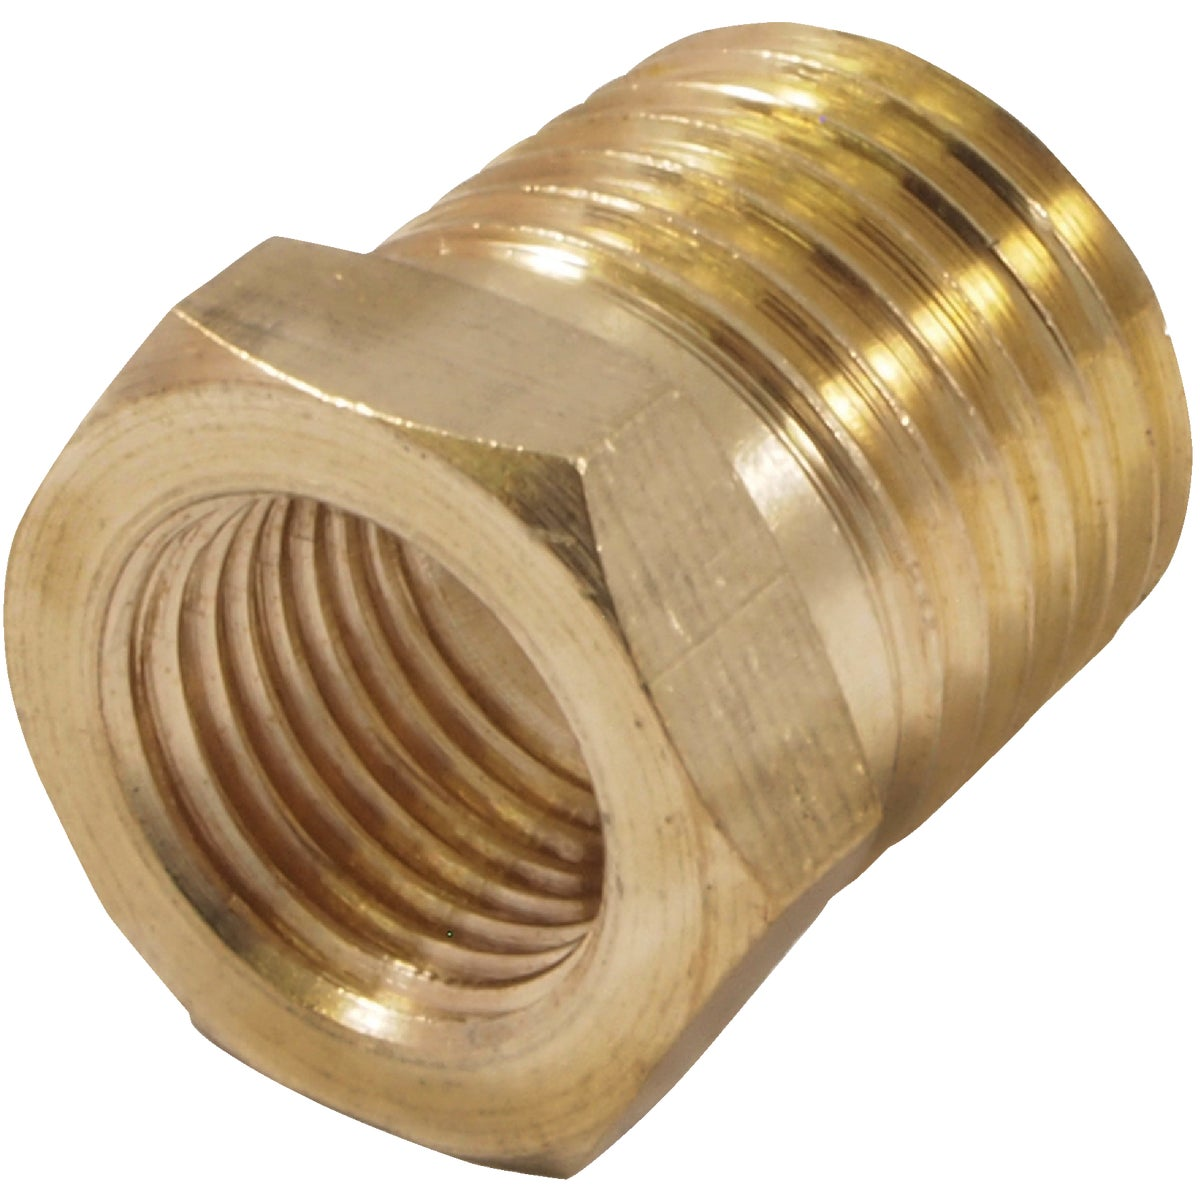 BRASS BUSHING - 75534 by Forney Industries